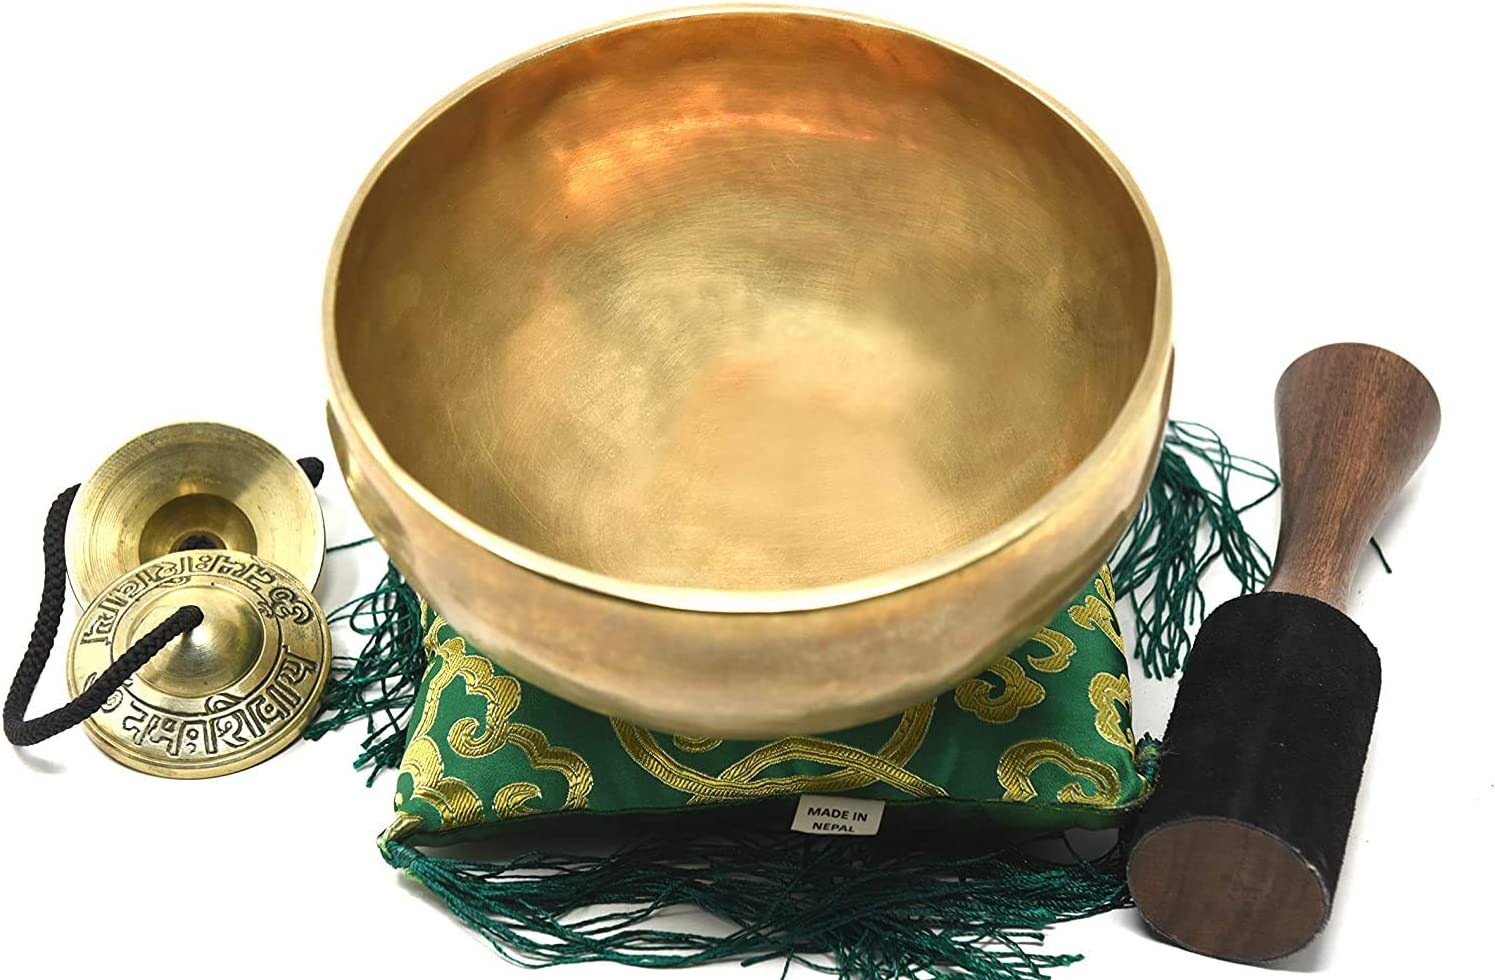 """7"""" Tibetan Singing Bowl ~ Superb B Crown Chakra Bowl for Meditation, Yoga, Healing, Mindfulness, Relaxation & Sound Therapy ~ Handmade Bowl with Wooden Mallet, Silk Cushion & Tingsha Cymbals included"""